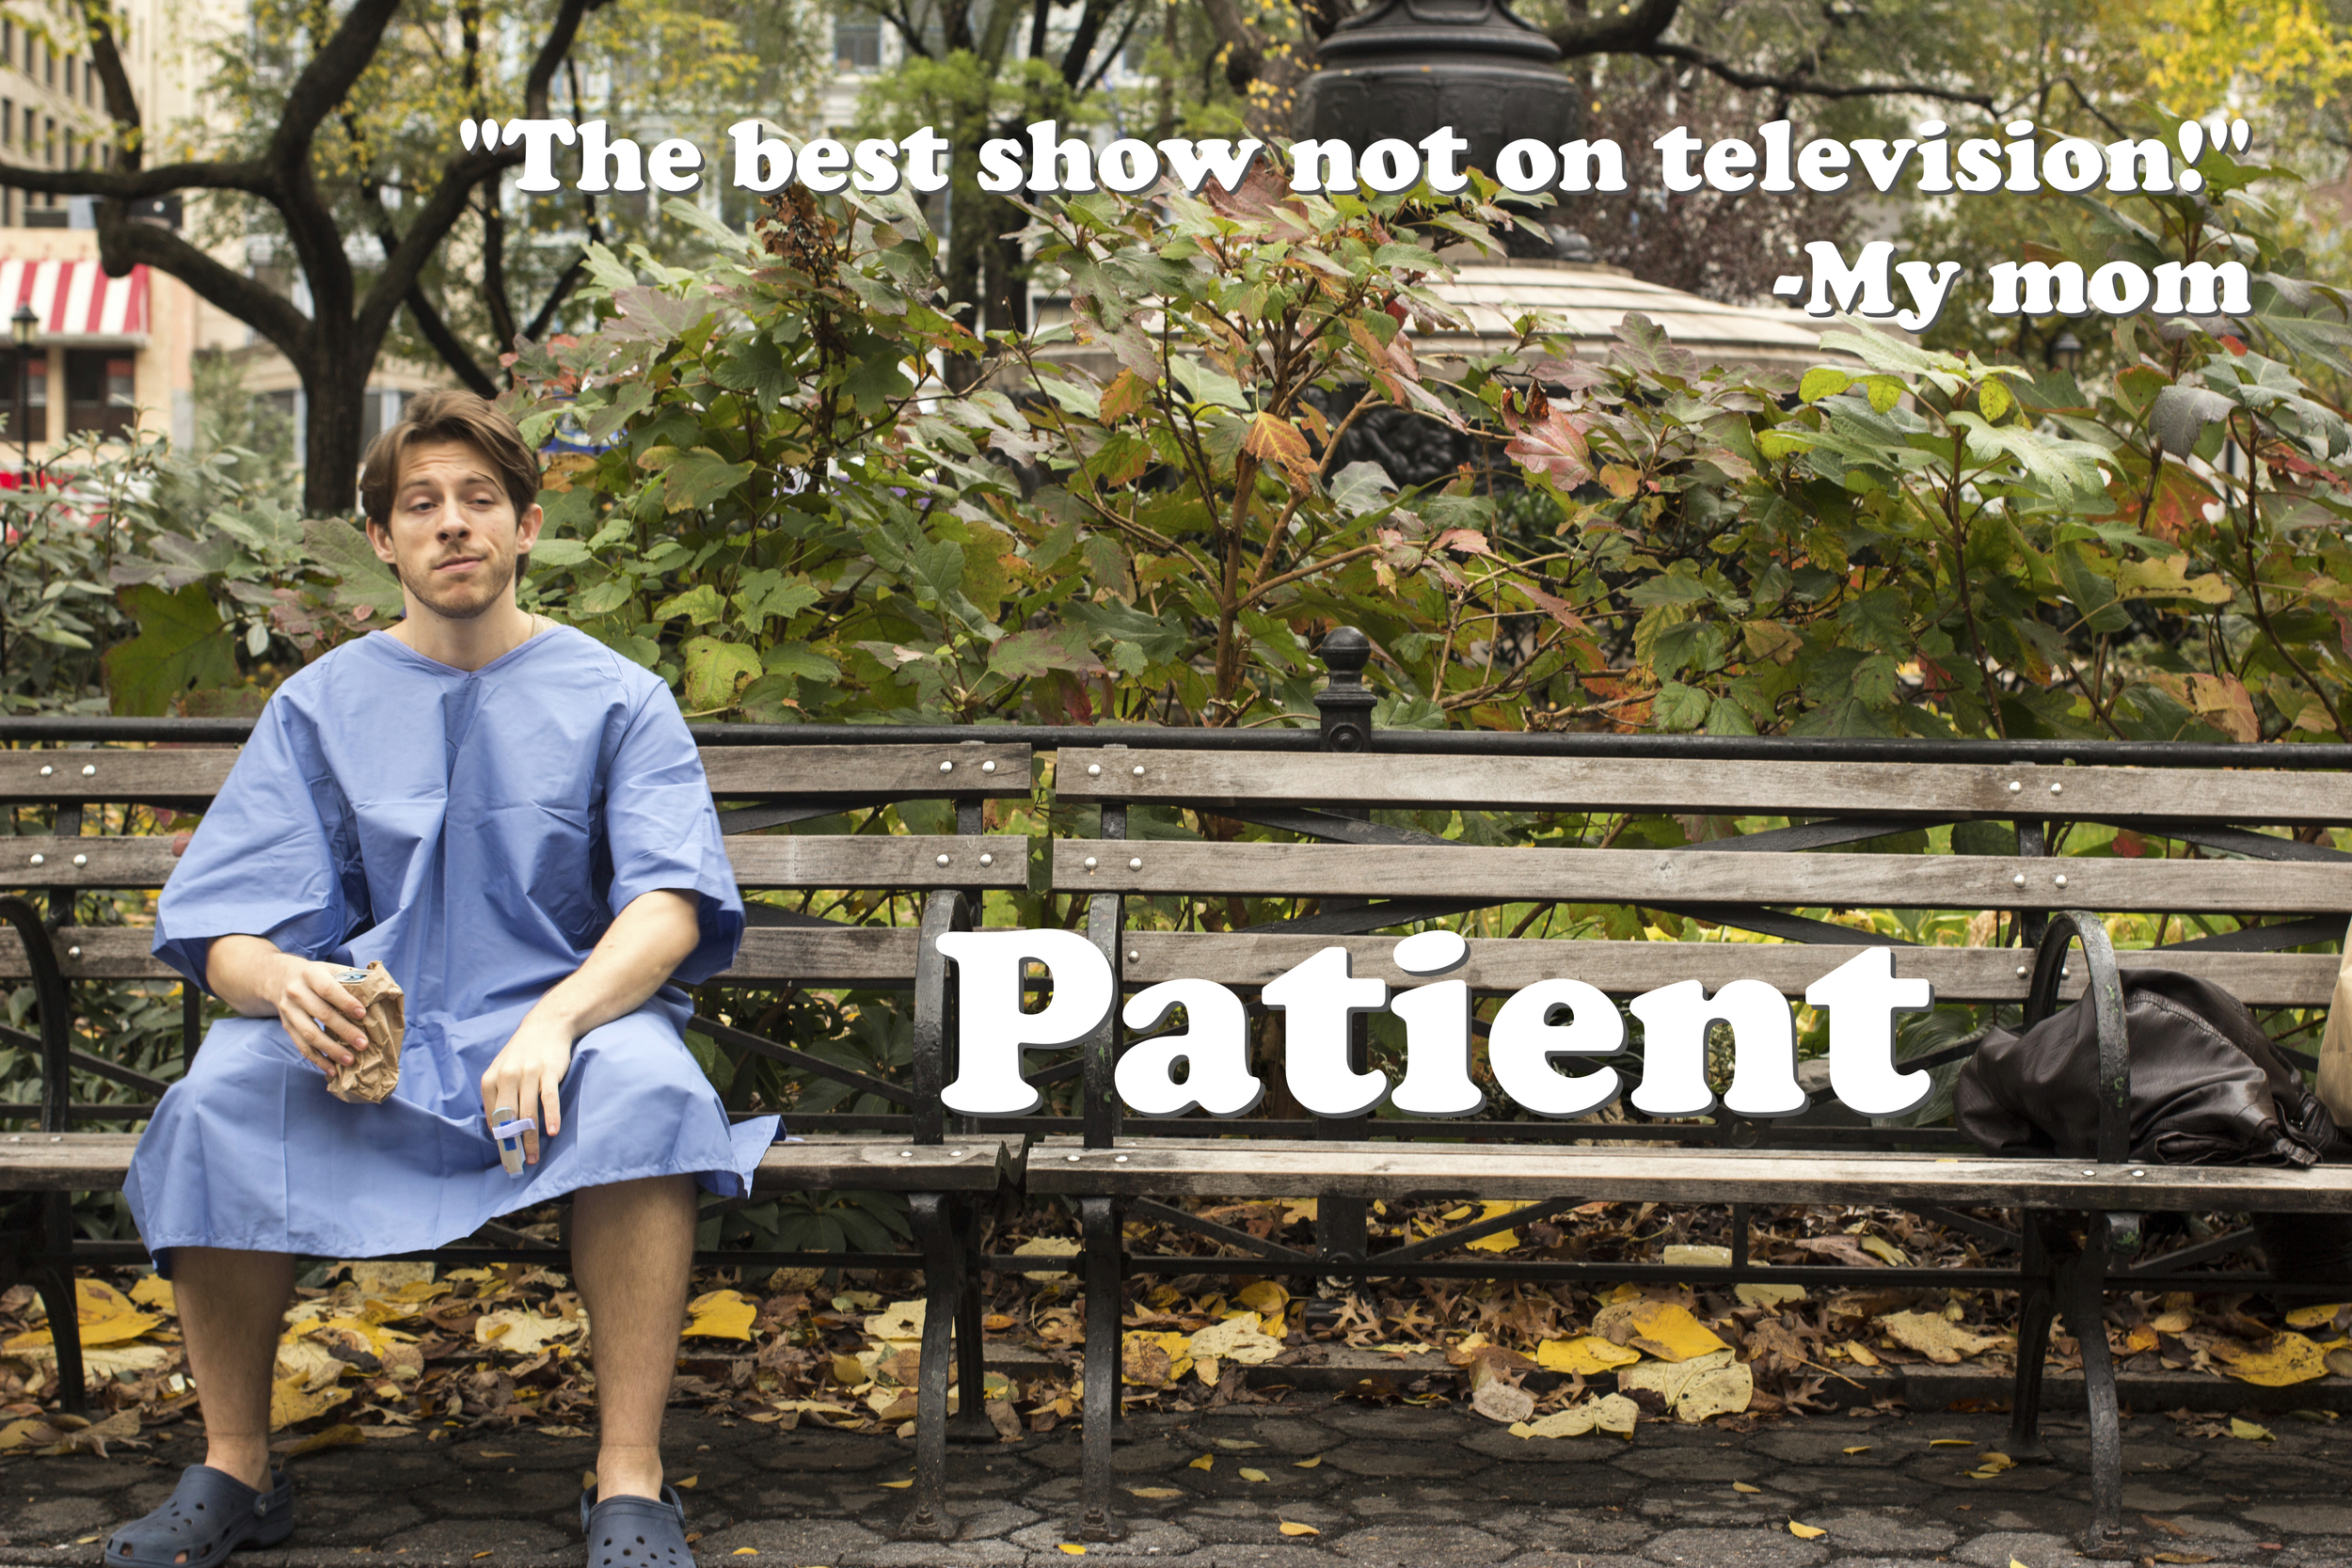 mom quote for patient.jpg